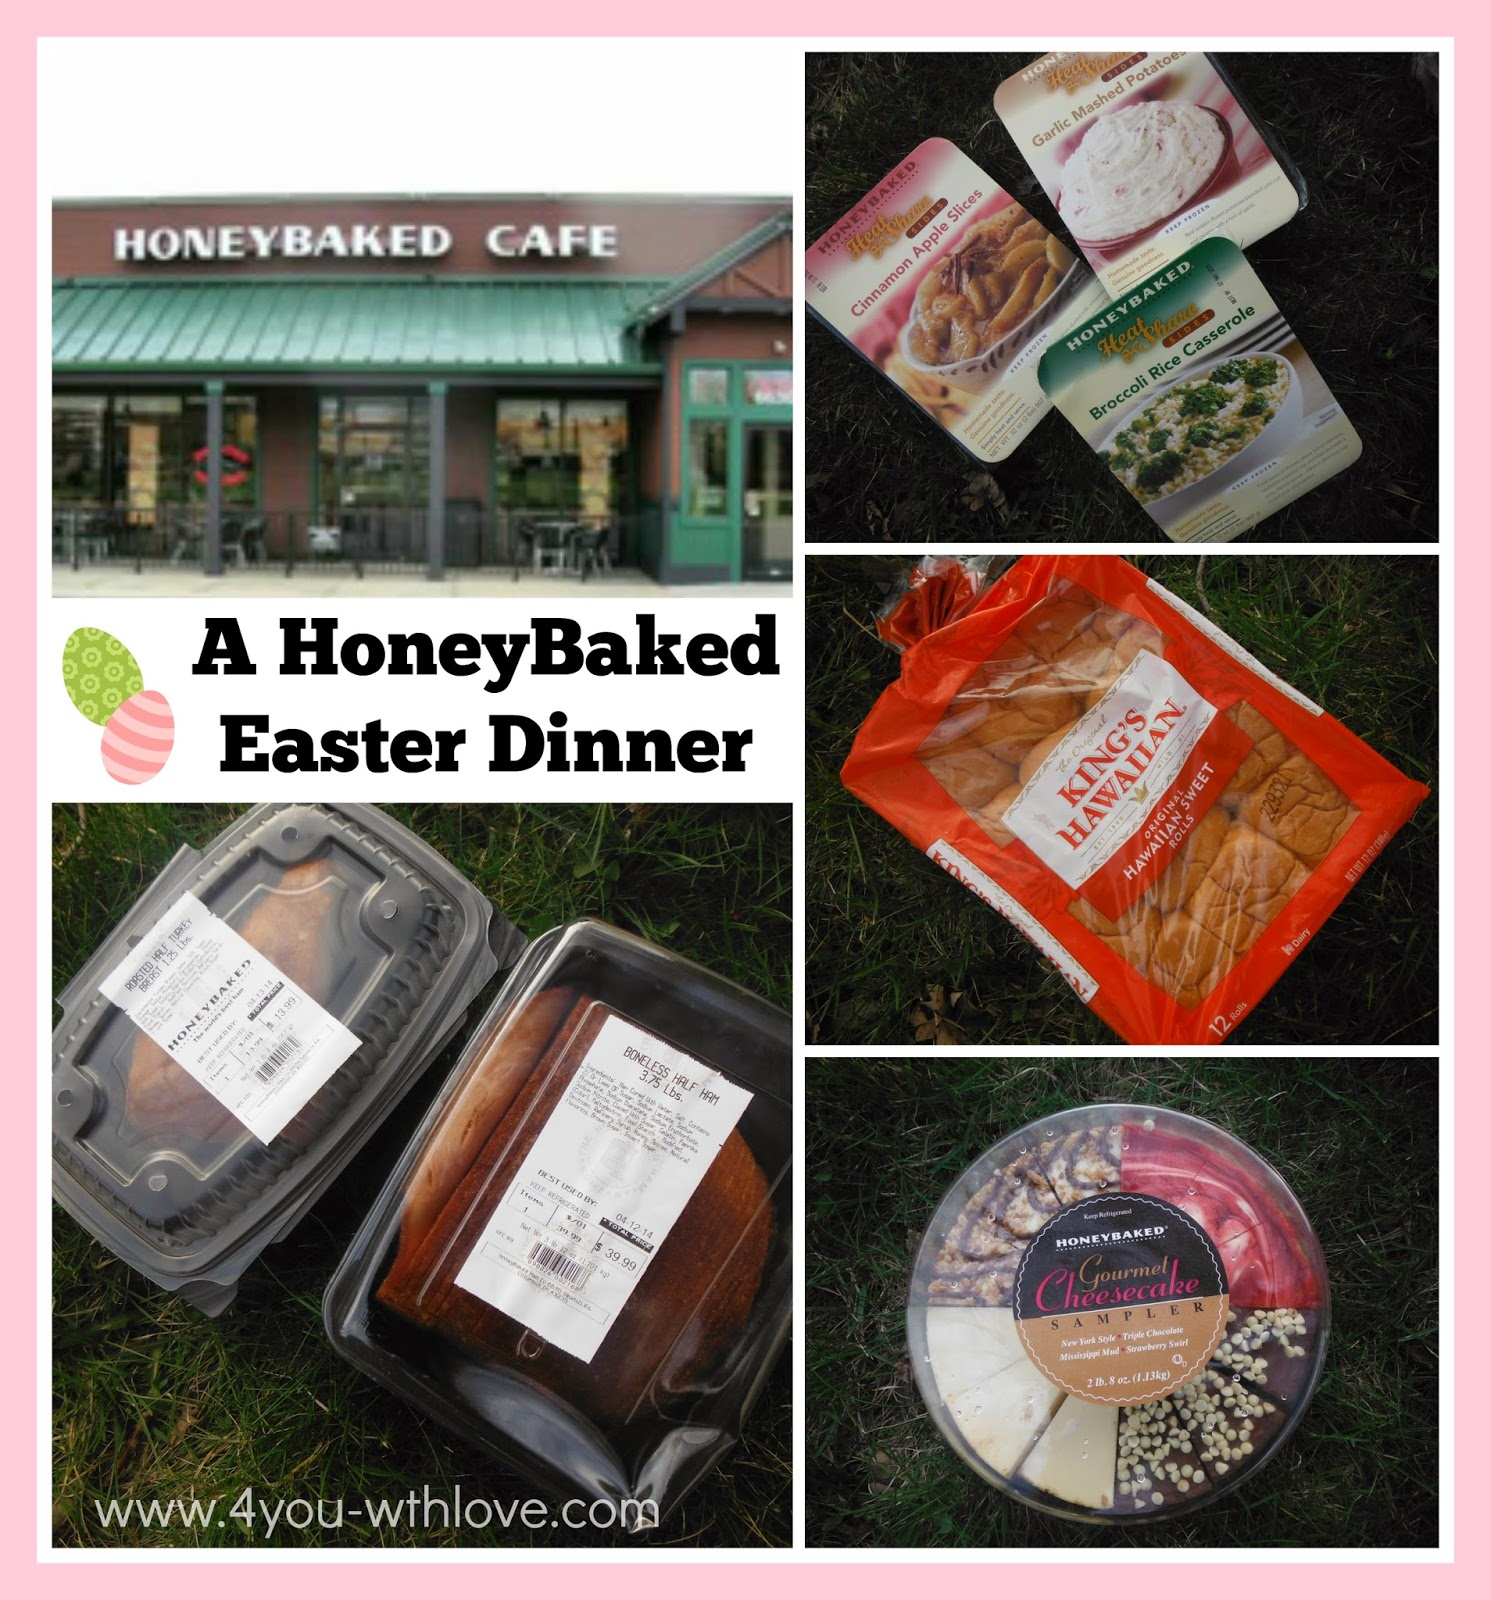 A HoneyBaked Easter Dinner is a Definite Winner Plus a $50 Giveaway!